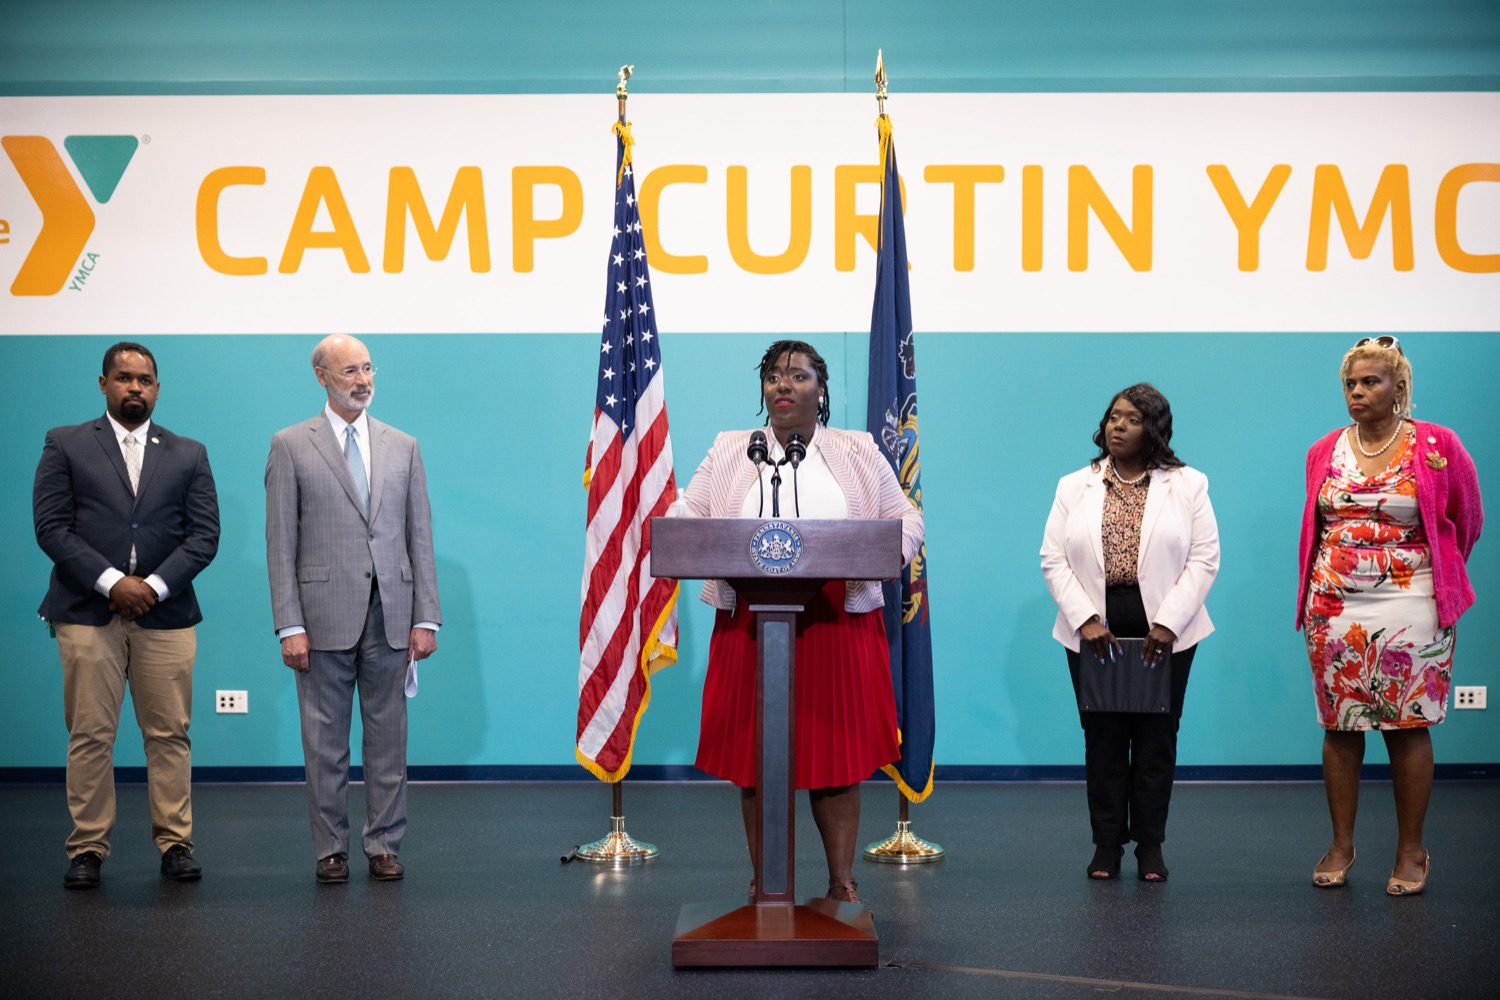 """<a href=""""https://filesource.wostreaming.net/commonwealthofpa/photo/18815_gov_voterRights_dz_009.jpg"""" target=""""_blank"""">⇣Download Photo<br></a>House Democratic Caucus Leader Joanna McClinton, Representative from Delaware and Philadelphia Counties speaking with the press.With some politicians spreading lies about our elections to divide us, Governor Tom Wolf today vowed to protect the freedom to vote and oppose legislation that would create barriers to voting and silence the voices of some Pennsylvanians. These are the same lies that led directly to the appalling assault on our U.S. Capitol and our democracy on January 6, and now, just a few short months later, the same people who fomented, encouraged, and joined that mob are again emerging to undermine the fabric of our nation.   Harrisburg, PA  June 9, 2021"""